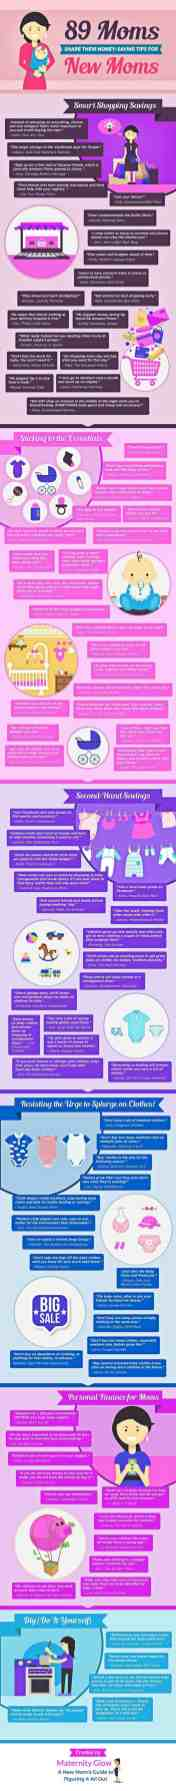 Best Infographic About Pregnancy 29